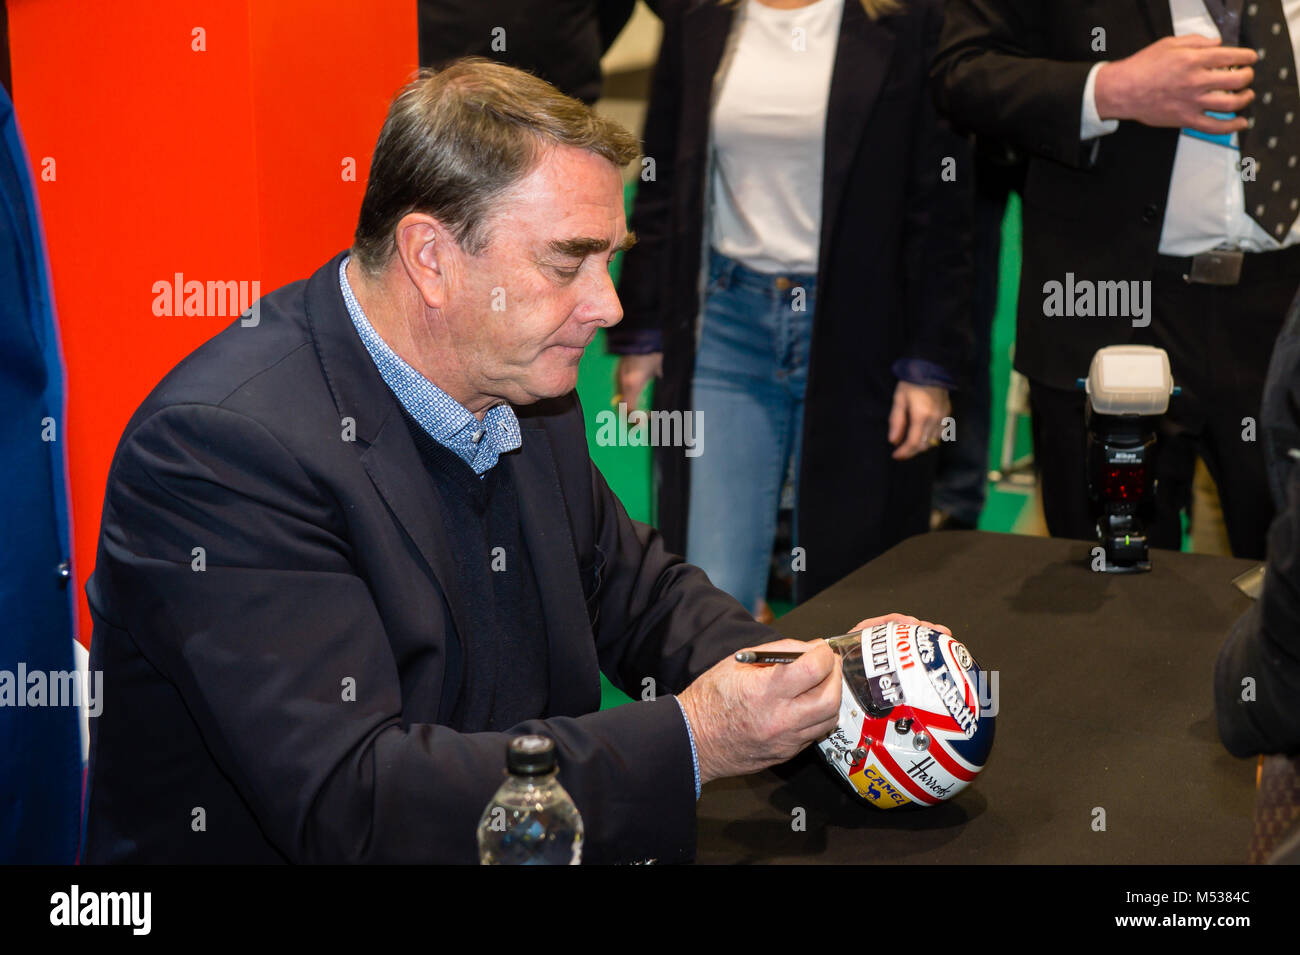 Nigel Mansell signing autographs for fans at The London Classic Car Show & Historic Motorsport International - Stock Image